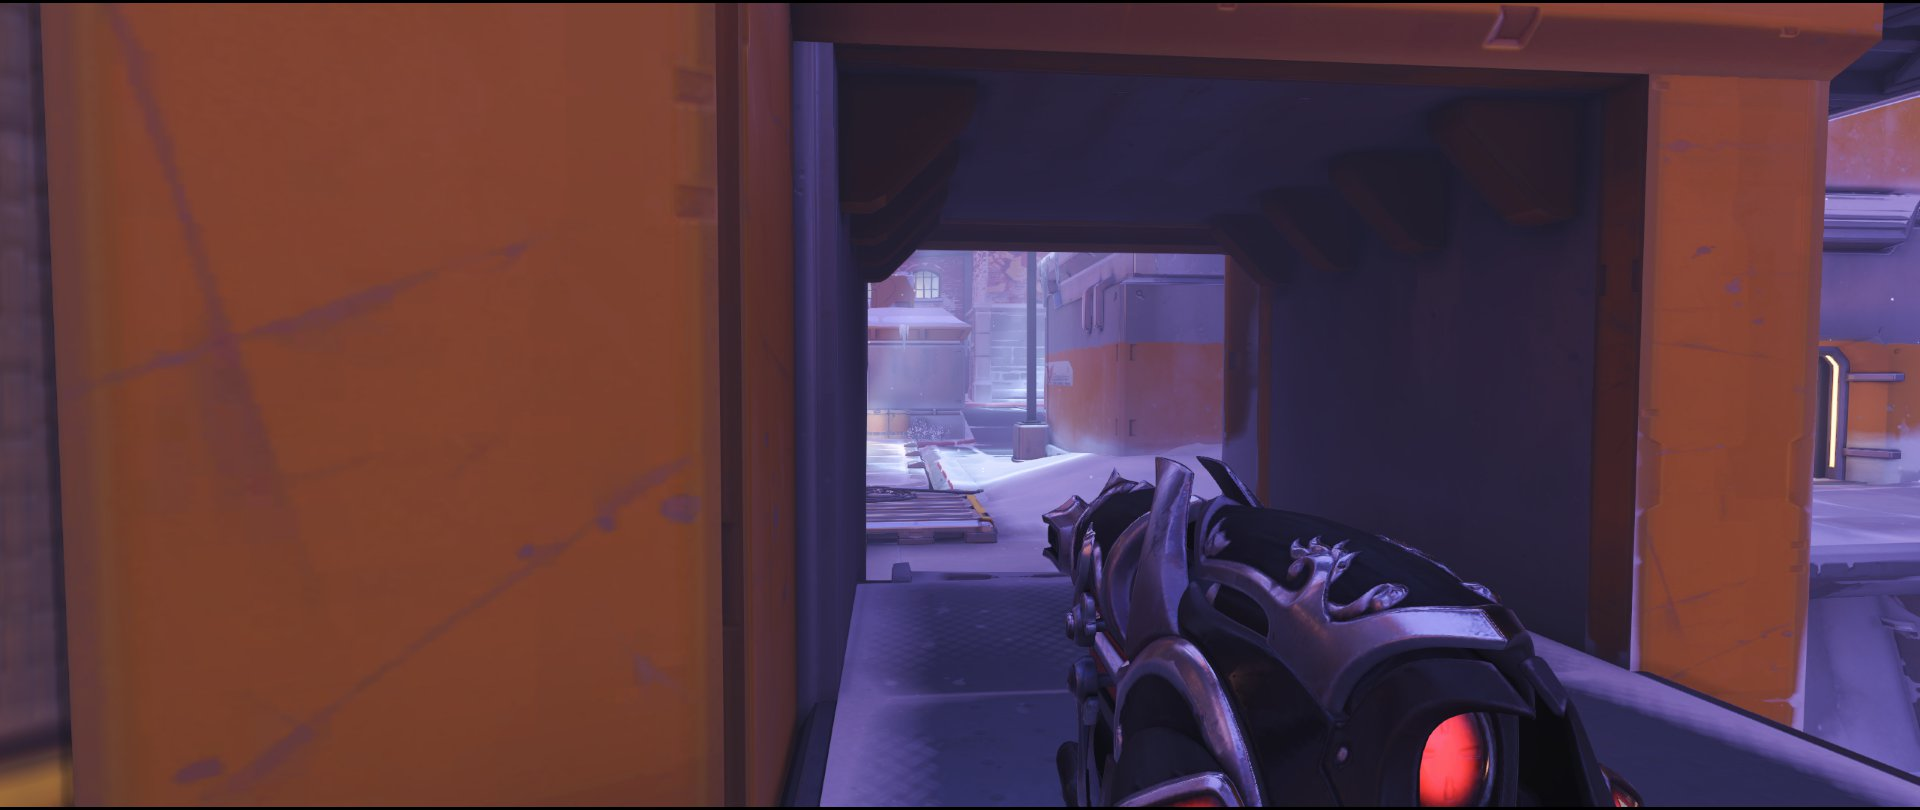 Right side dock defense sniping spot Widowmaker Volskaya Industries Overwatch.jpg